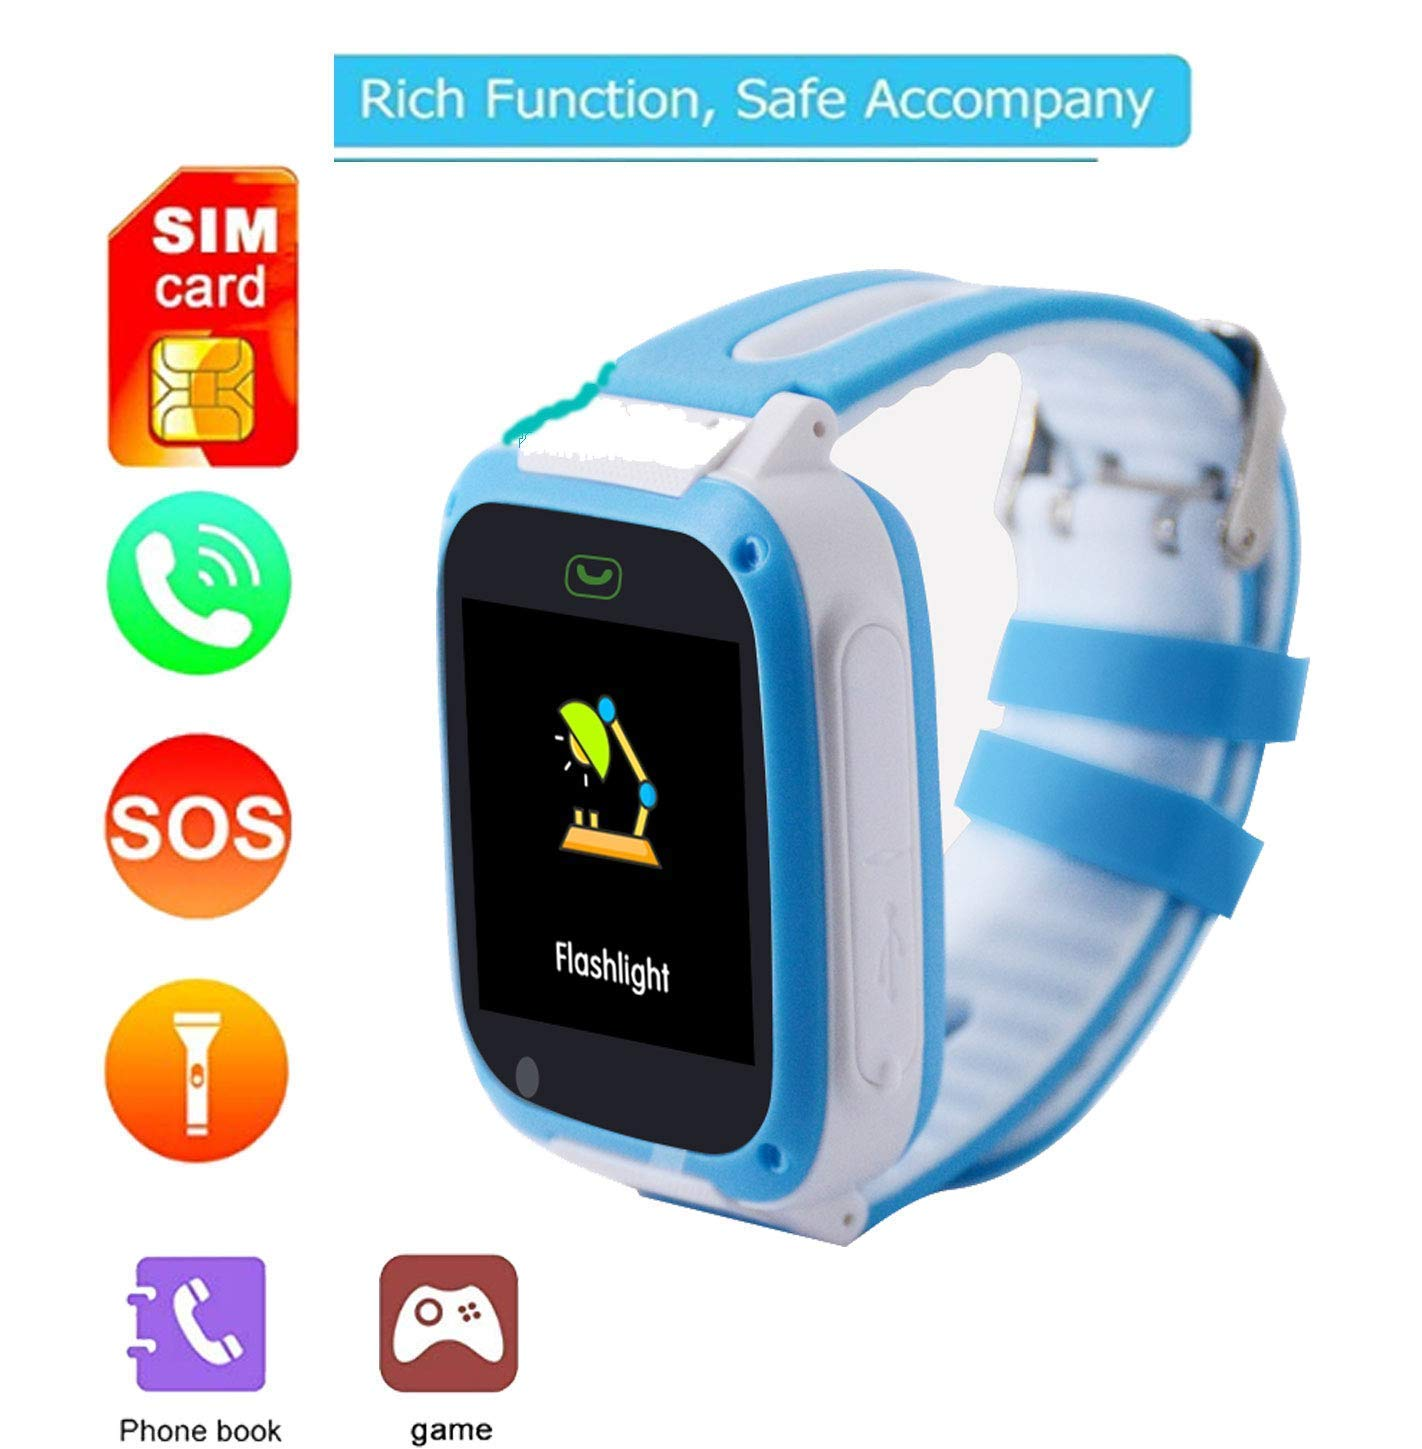 Youcoco Boys and Girls Muti-Function Smart Watch Phone Waterproof, with 1.54 Inch Touch Color LED Screen Display Smartwatch GPRS APGS Camera Toddler Smart Watch